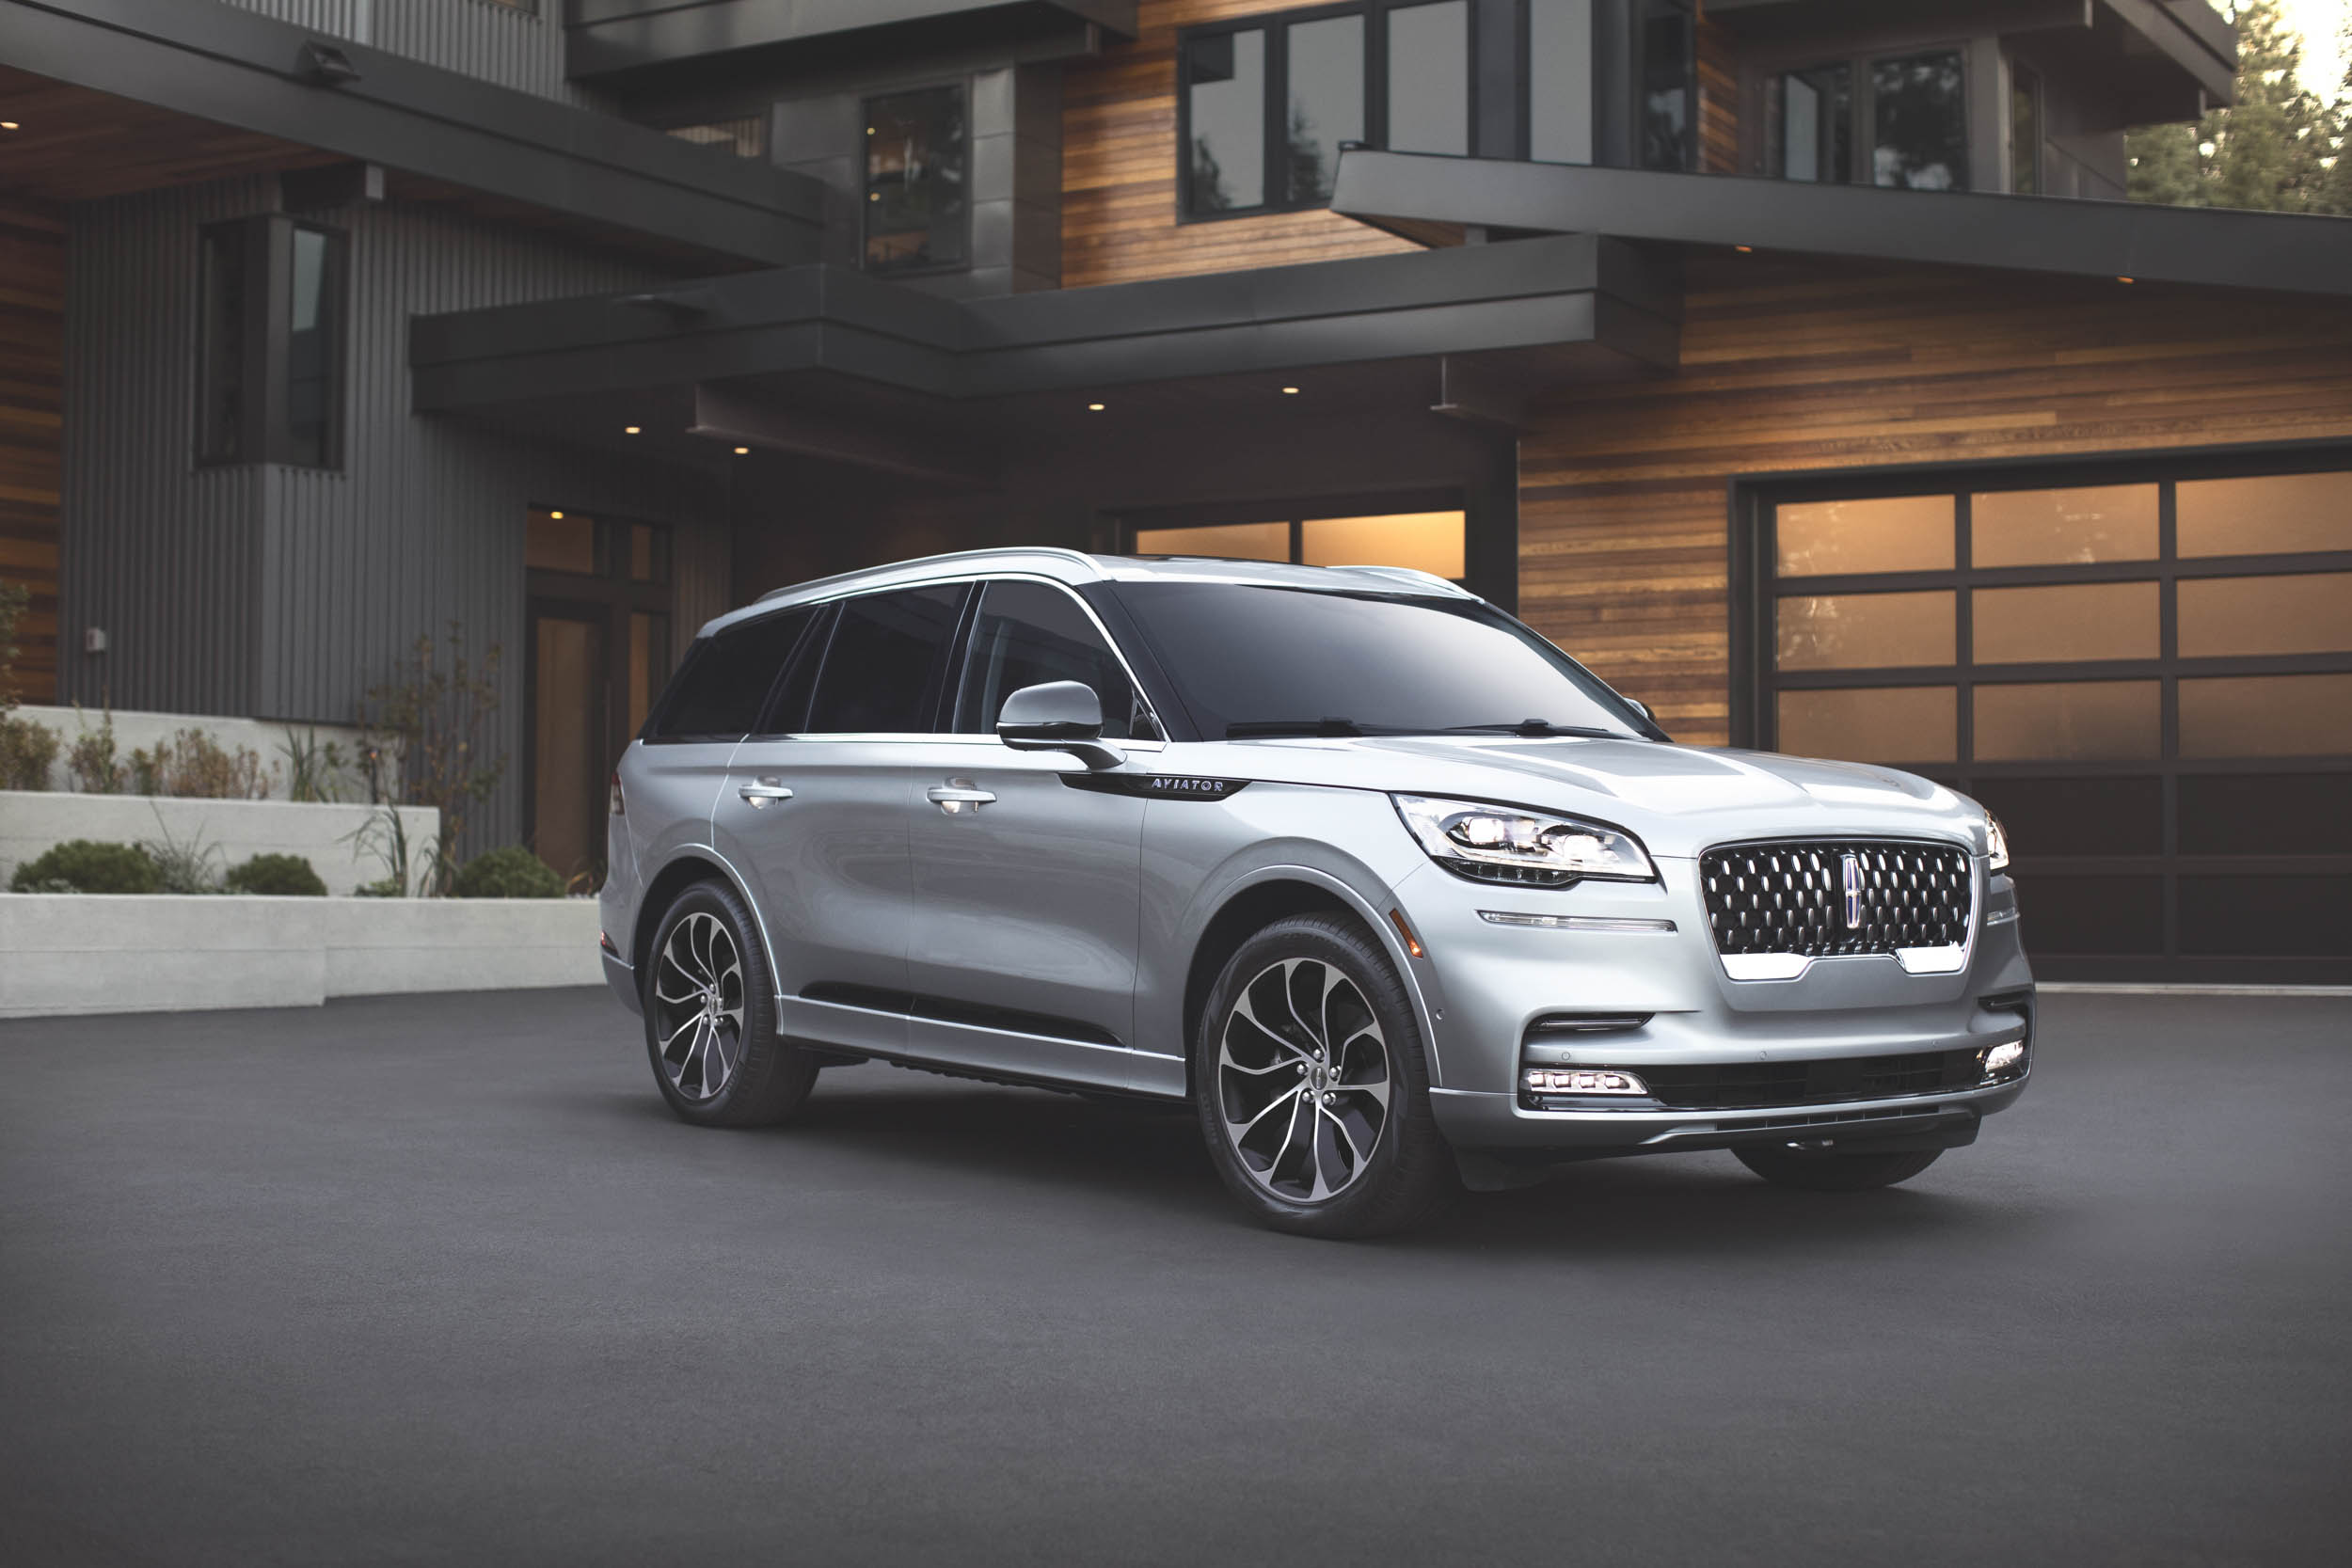 2020 Lincoln Aviator Grand Touring front 3/4